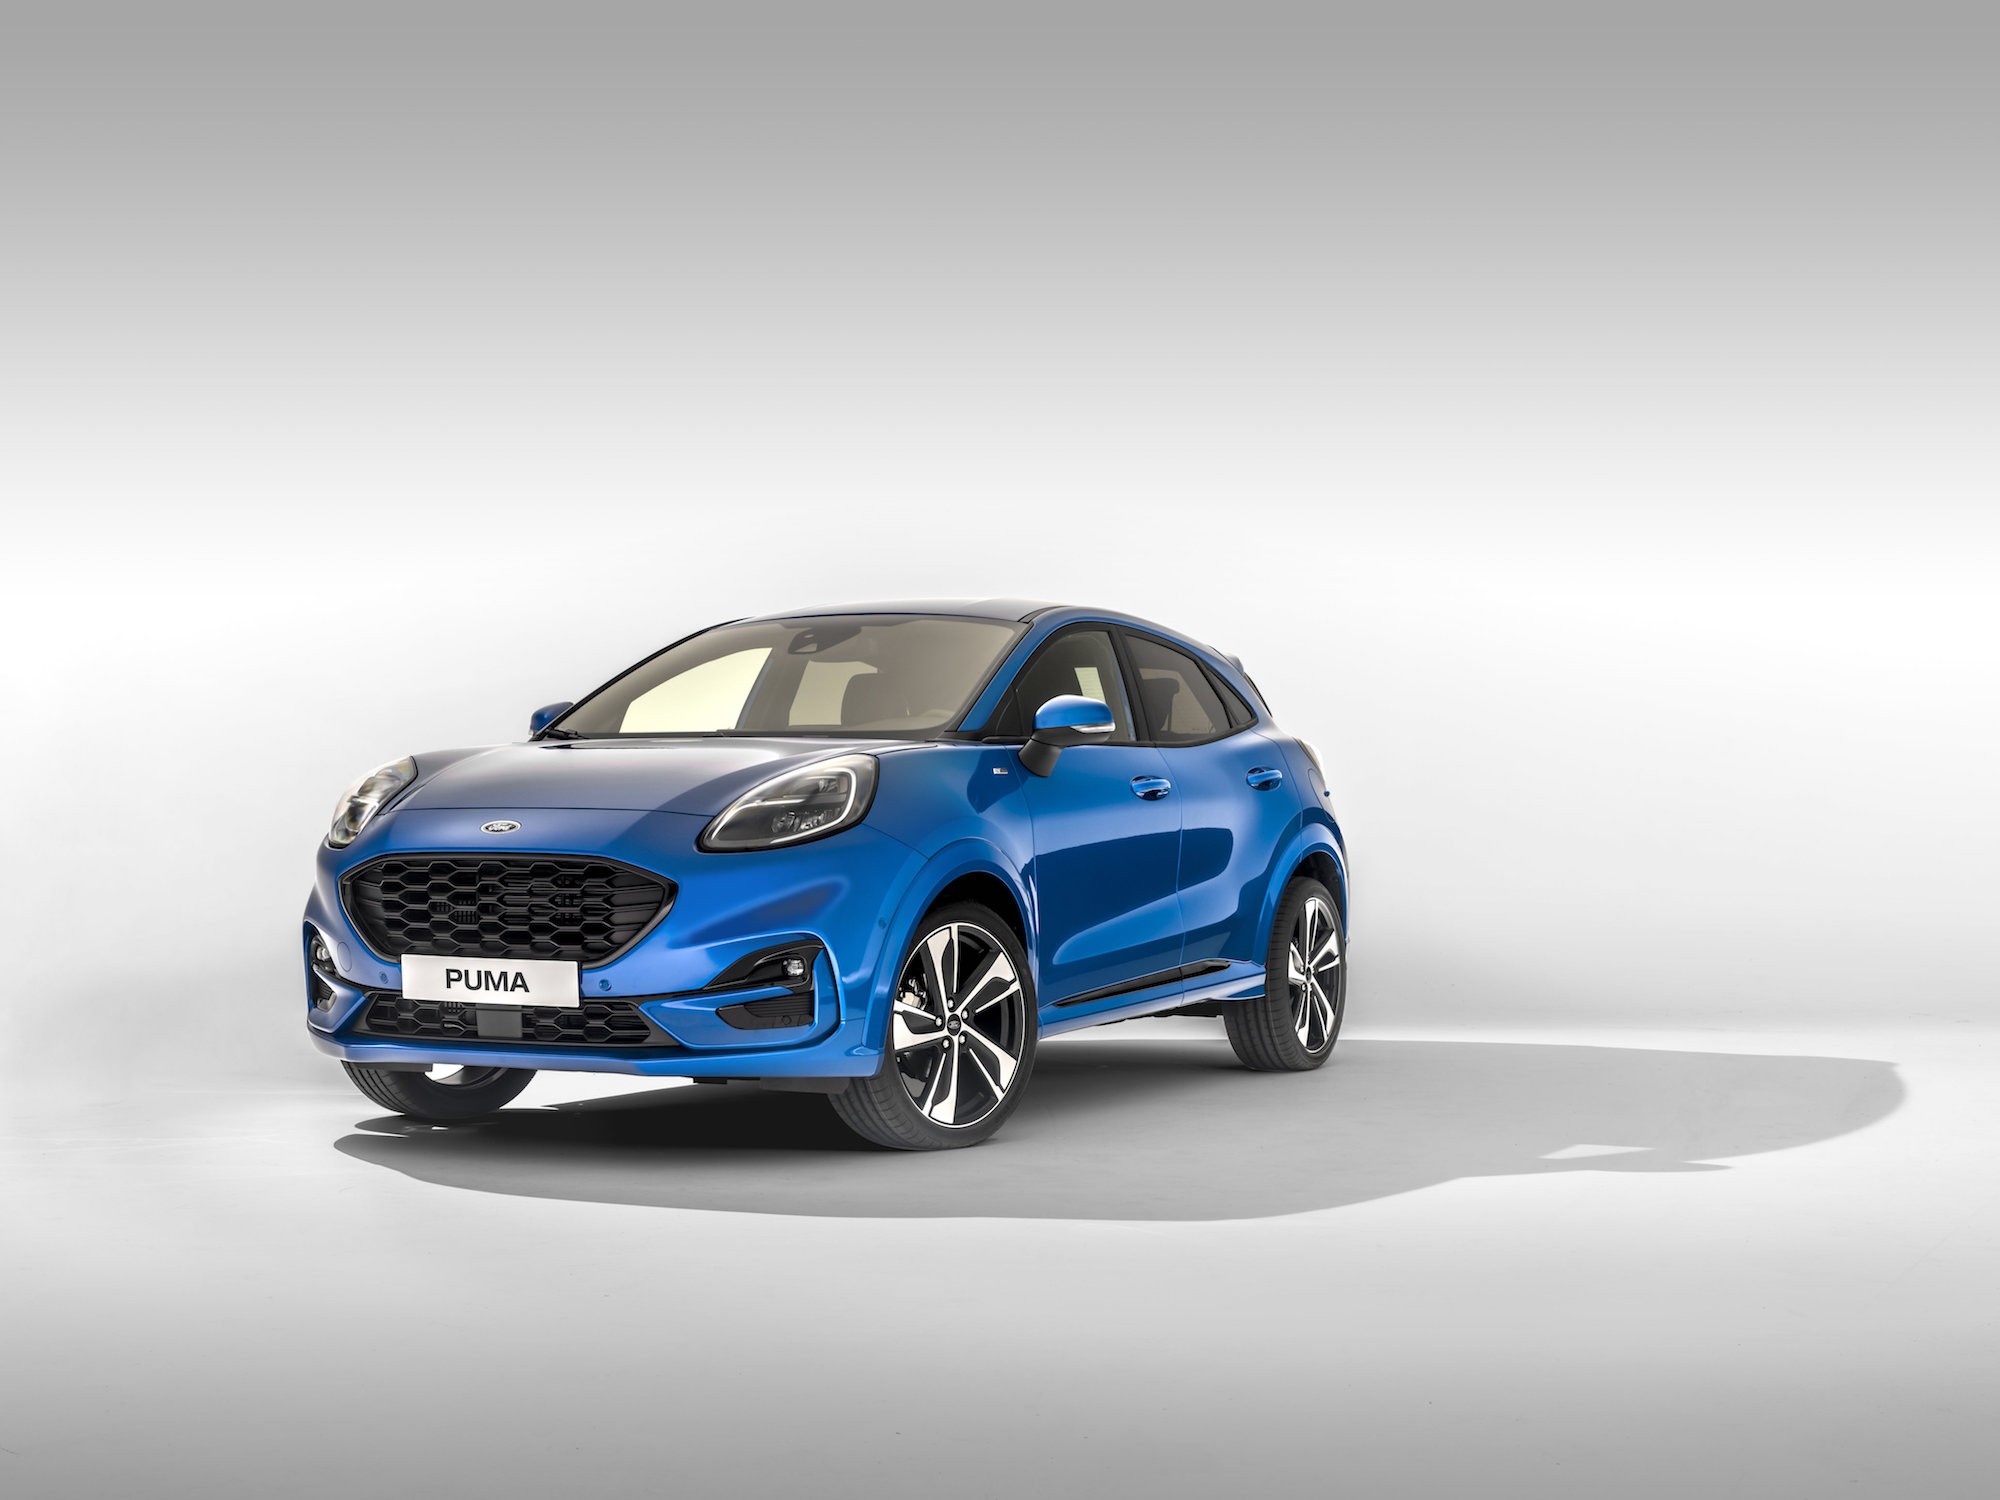 New Ford Puma hybrid crossover due here early January